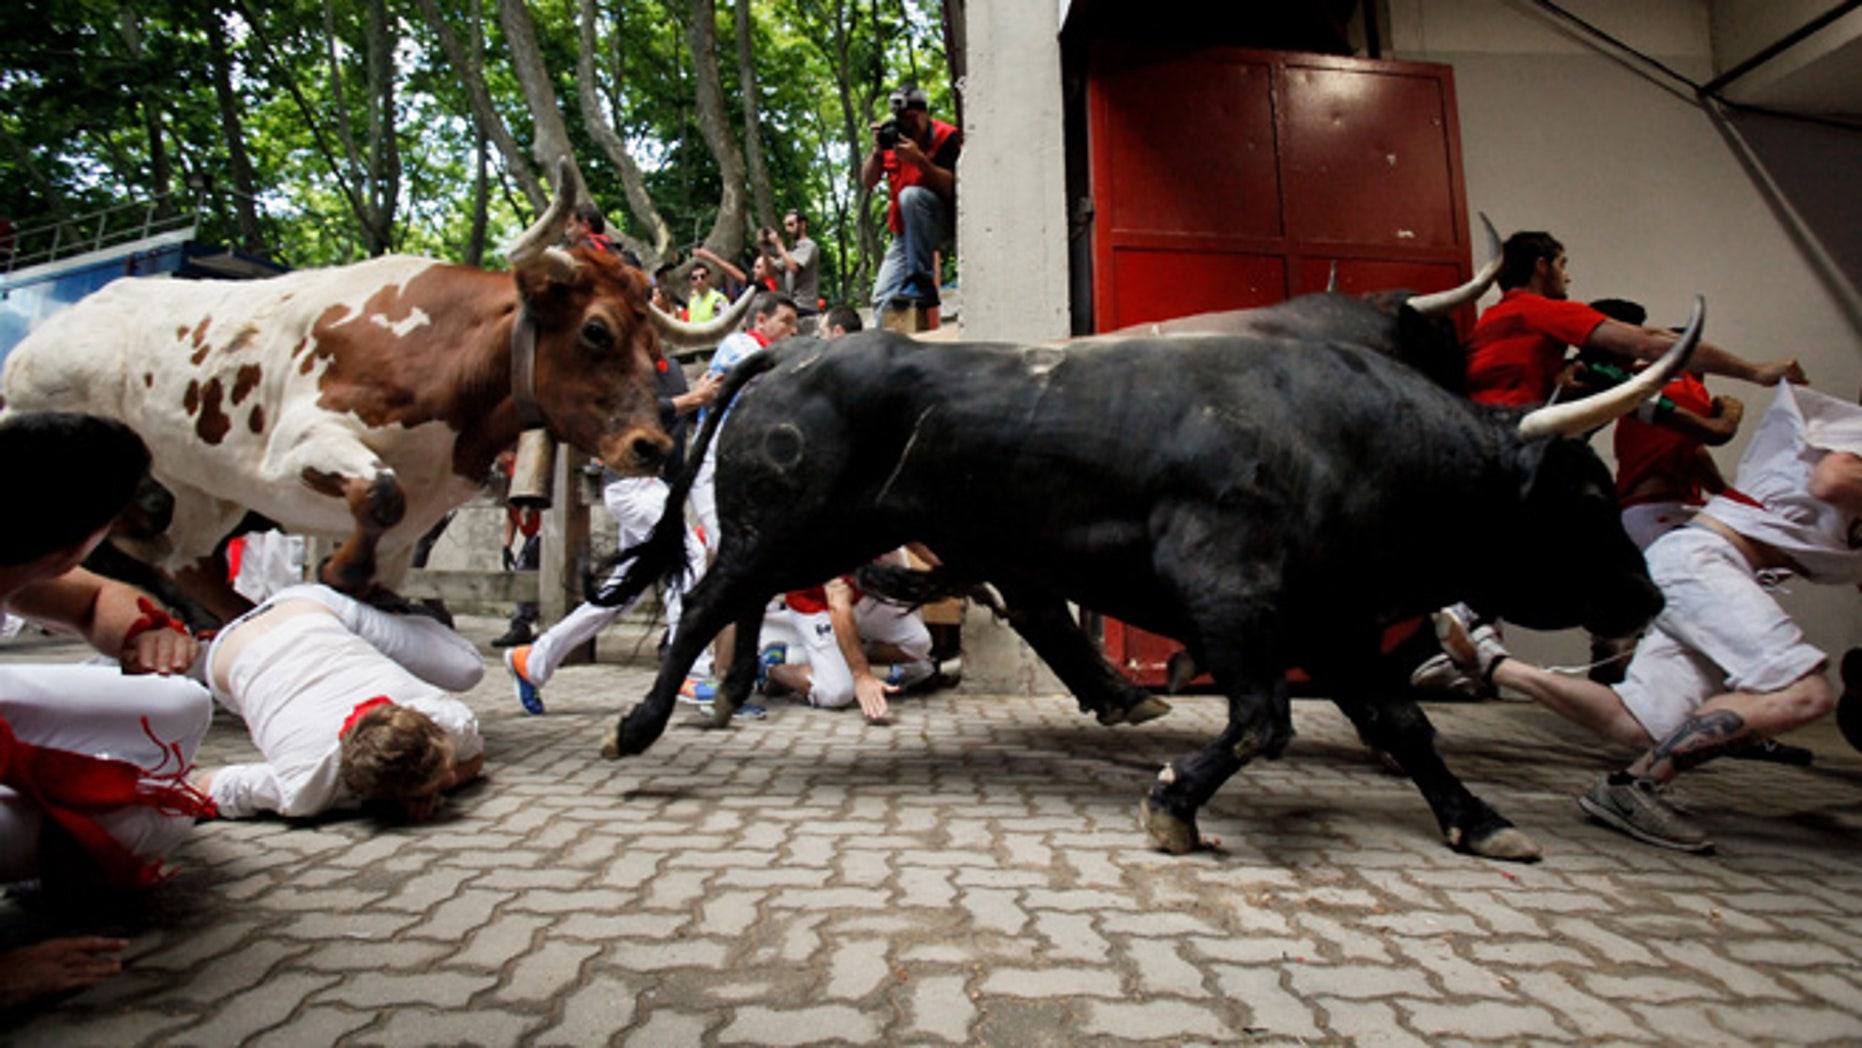 PAMPLONA, SPAIN - JULY 08:  Revellers fall while running with the Tajo and the Reina's fighting bulls entering the bullring during the third day of the San Fermin Running Of The Bulls festival on July 8, 2015 in Pamplona, Spain. The annual Fiesta de San Fermin, made famous by the 1926 novel of US writer Ernest Hemmingway entitled 'The Sun Also Rises', involves the daily running of the bulls through the historic heart of Pamplona to the bull ring.  (Photo by Pablo Blazquez Dominguez/Getty Images)